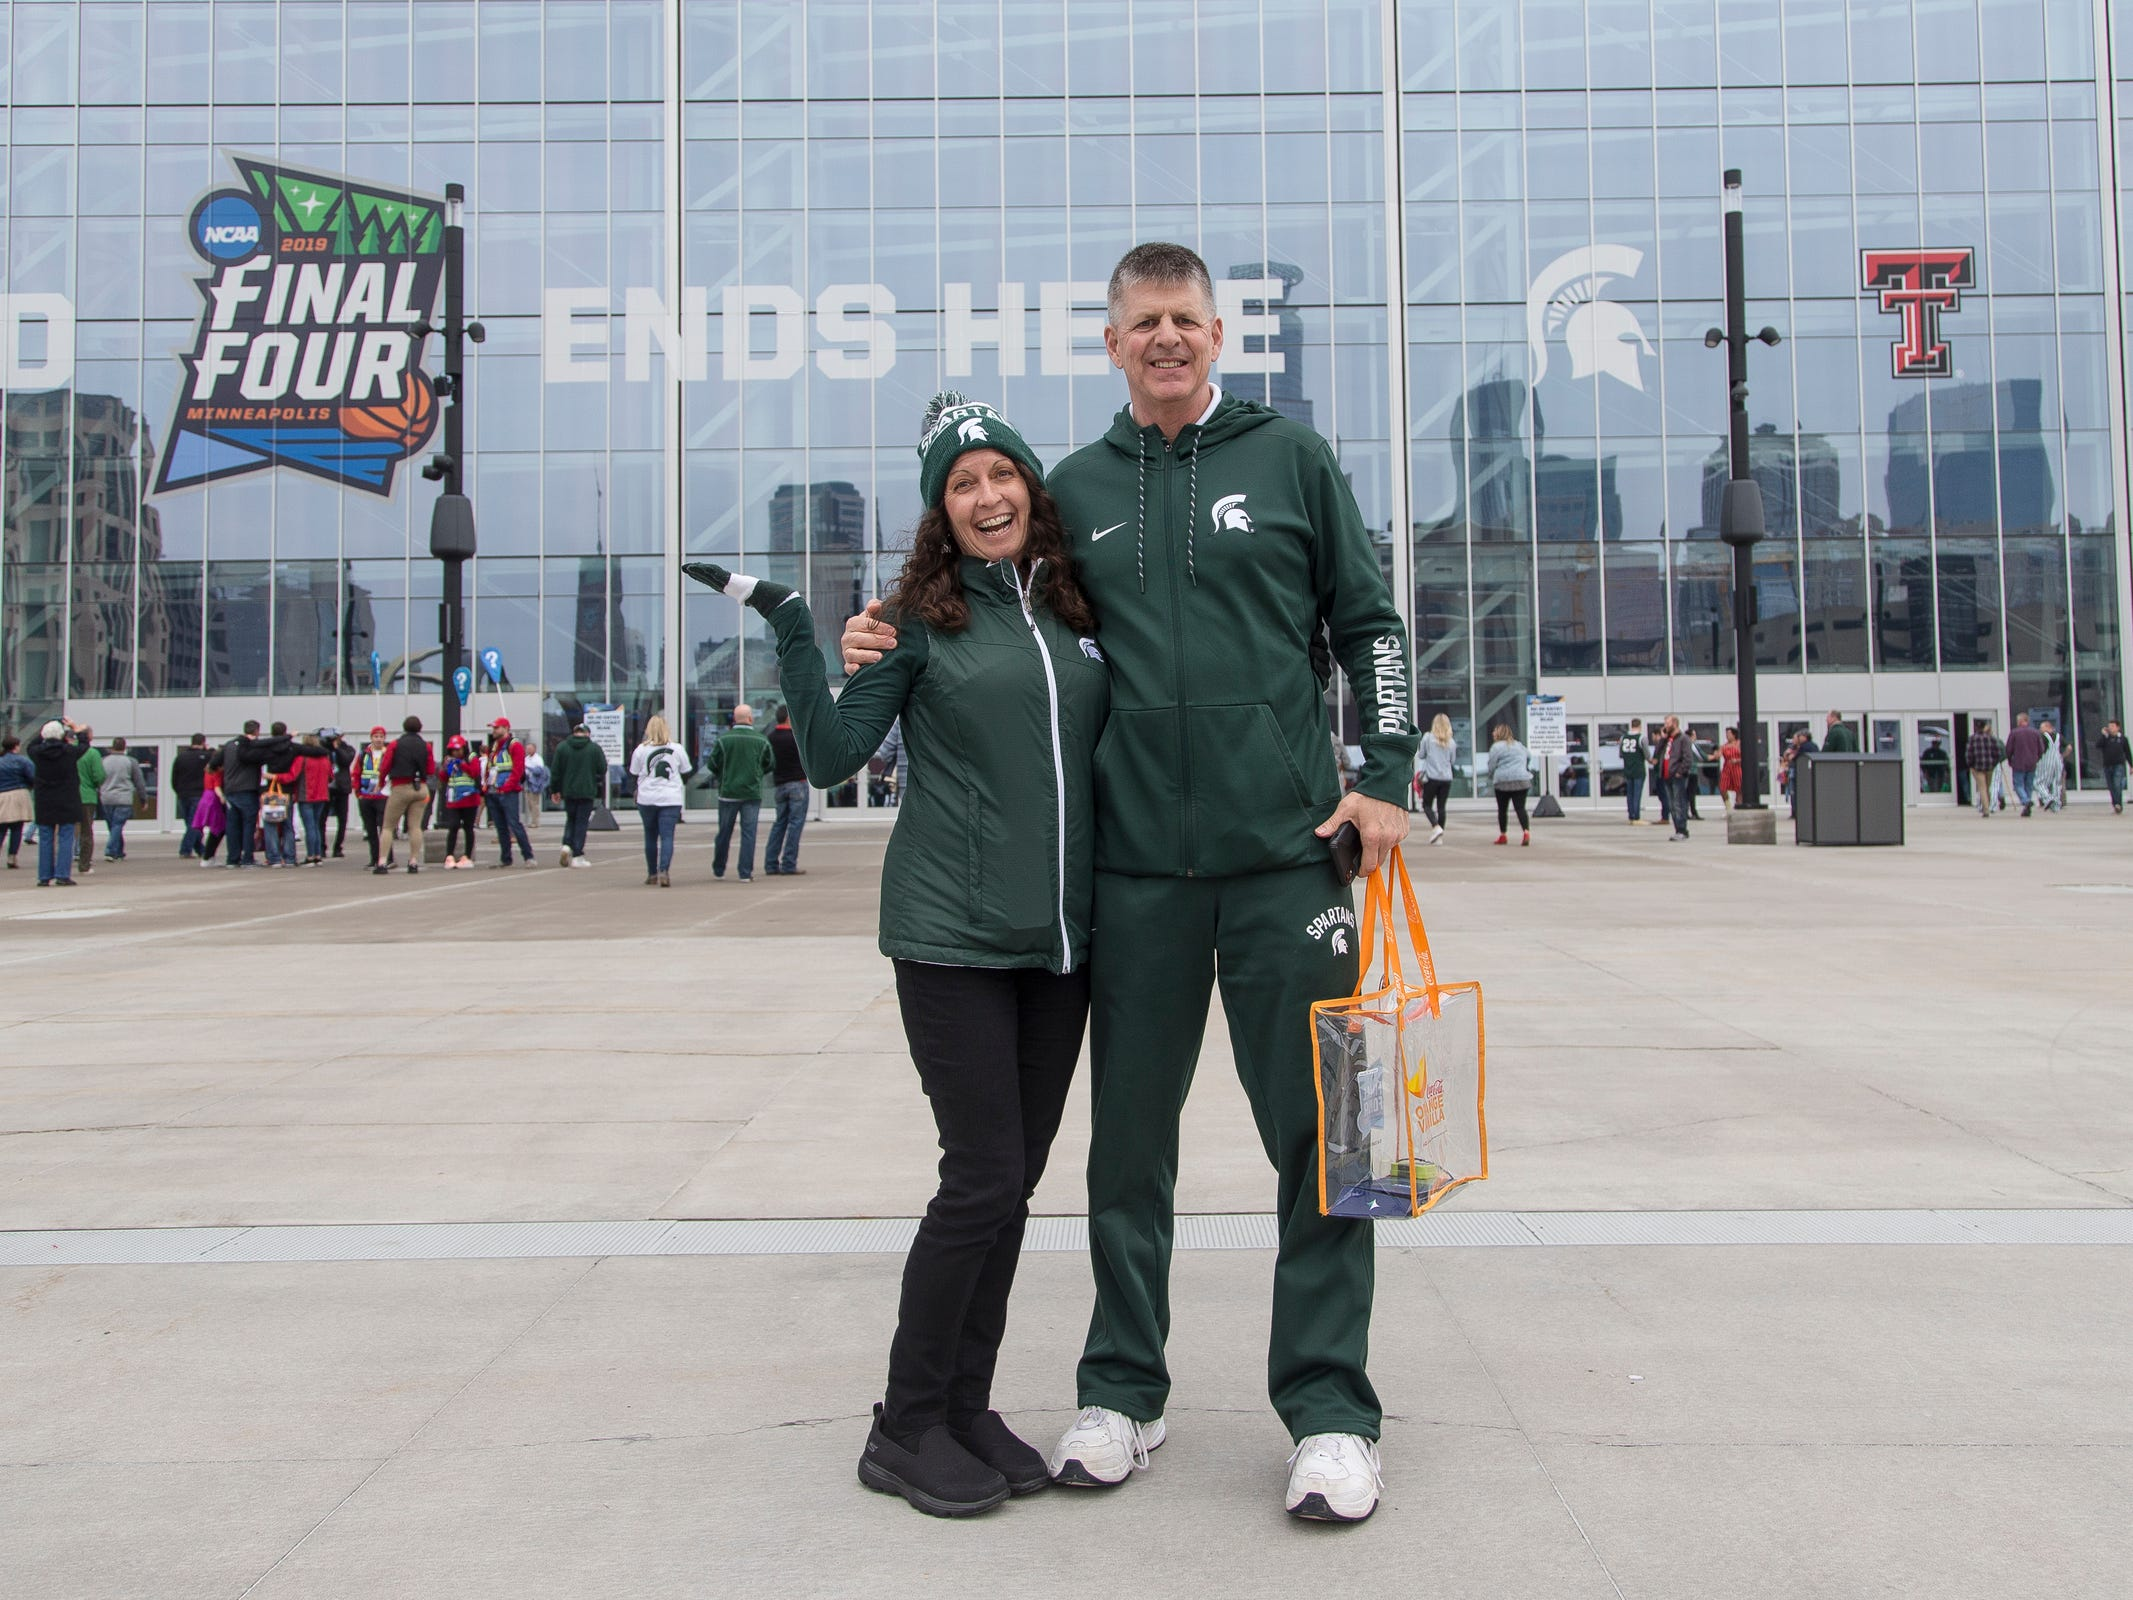 Marie Vernon and her husband Rick, both of Lansing, pose for a photo before the Final Four against Texas Tech at U.S. Bank Stadium in Minneapolis, Saturday, April 6, 2019.